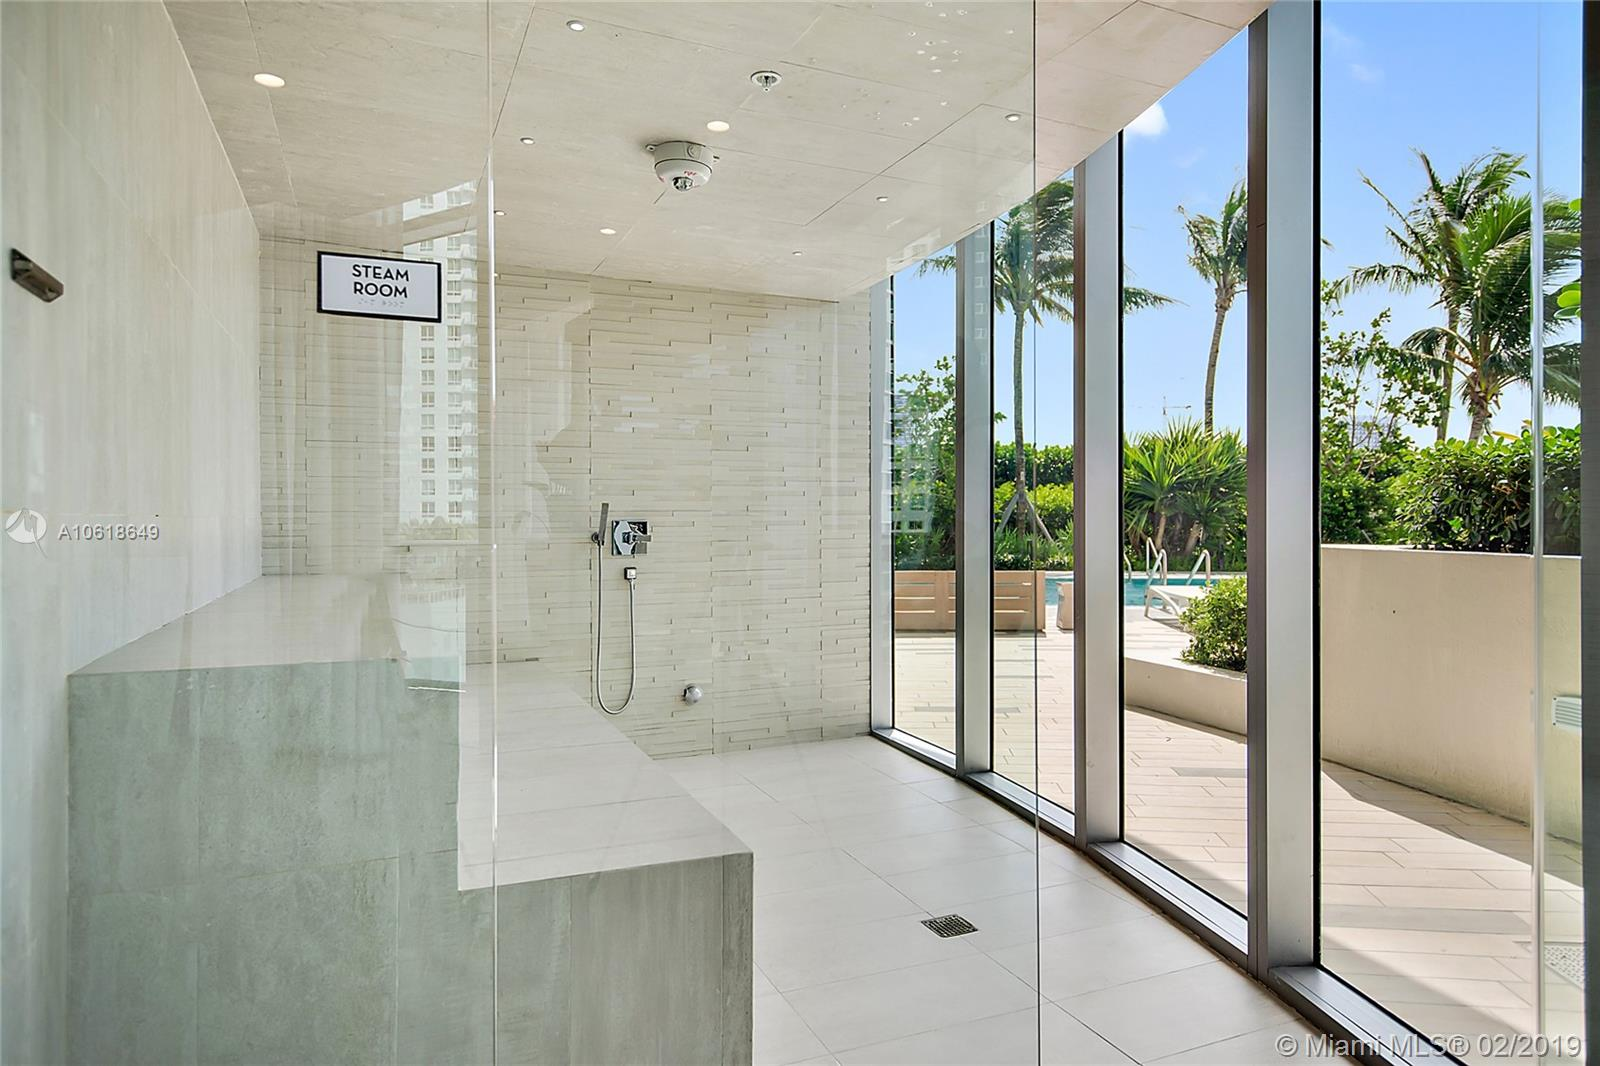 488 NE 18 Street, Miami, Florida 33132, 3 Bedrooms Bedrooms, ,4 BathroomsBathrooms,Residential,For Sale,488 NE 18 Street,A10618649